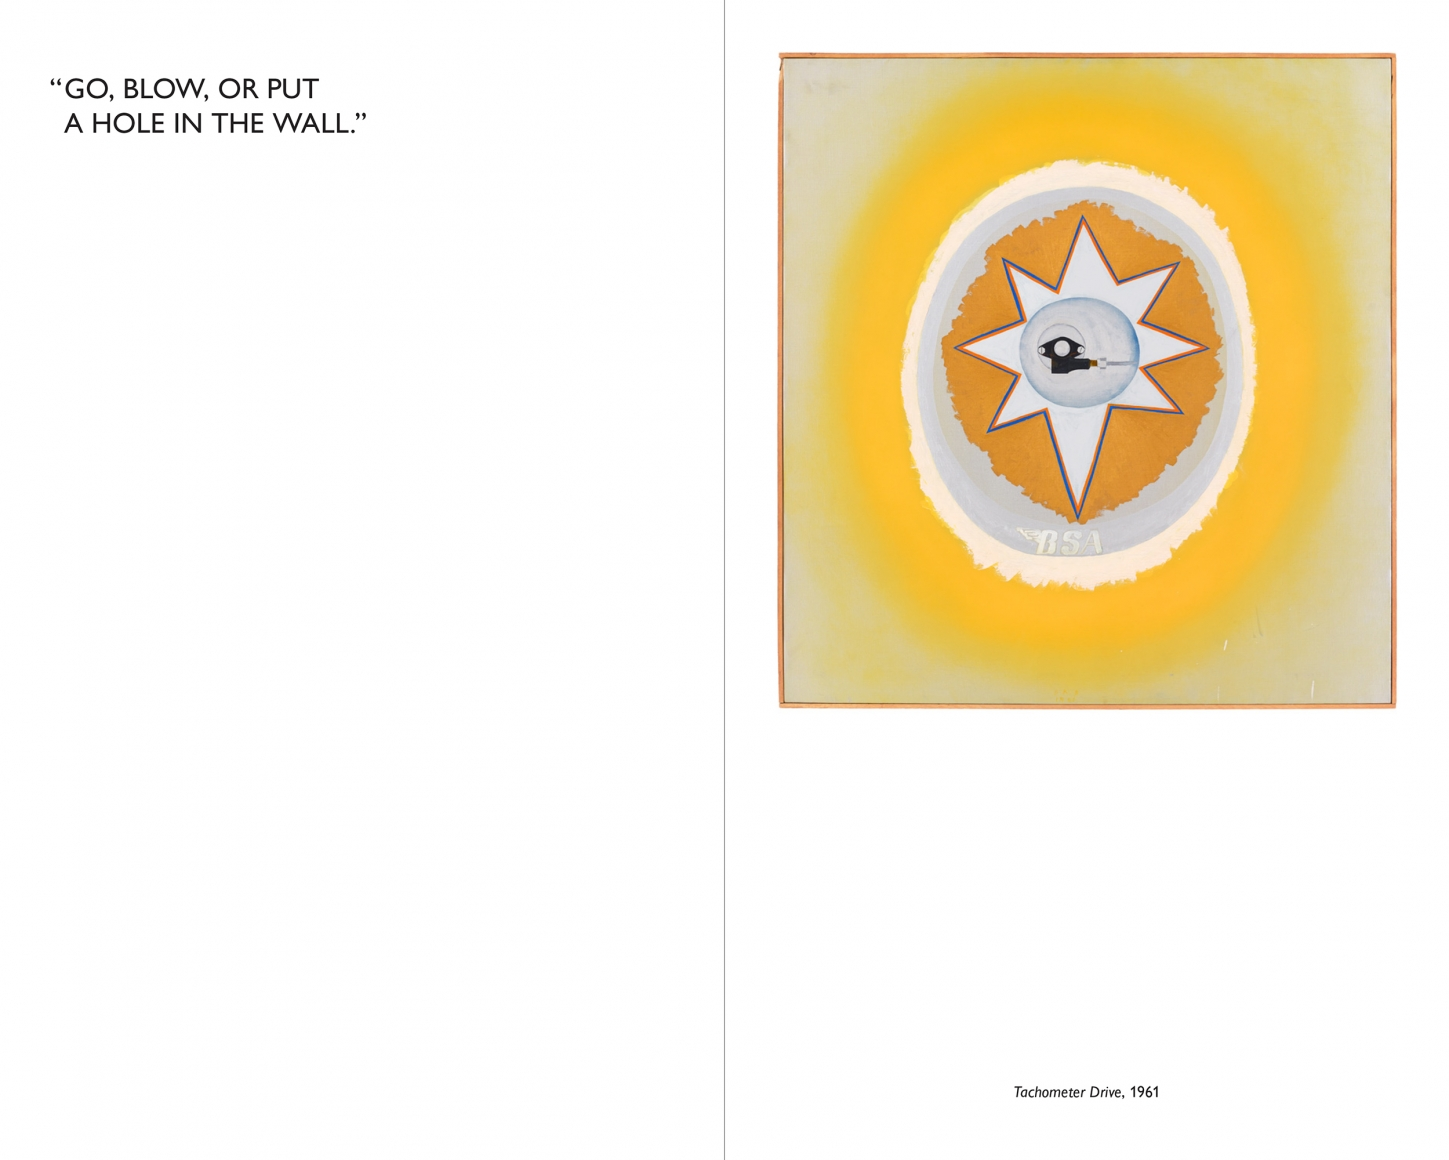 Interior view of Billy Al Bengston: My B.S.A. 350CC Gold Star & Blues for Aub (get it?), published by Venus Over Manhattan, New York, 2016